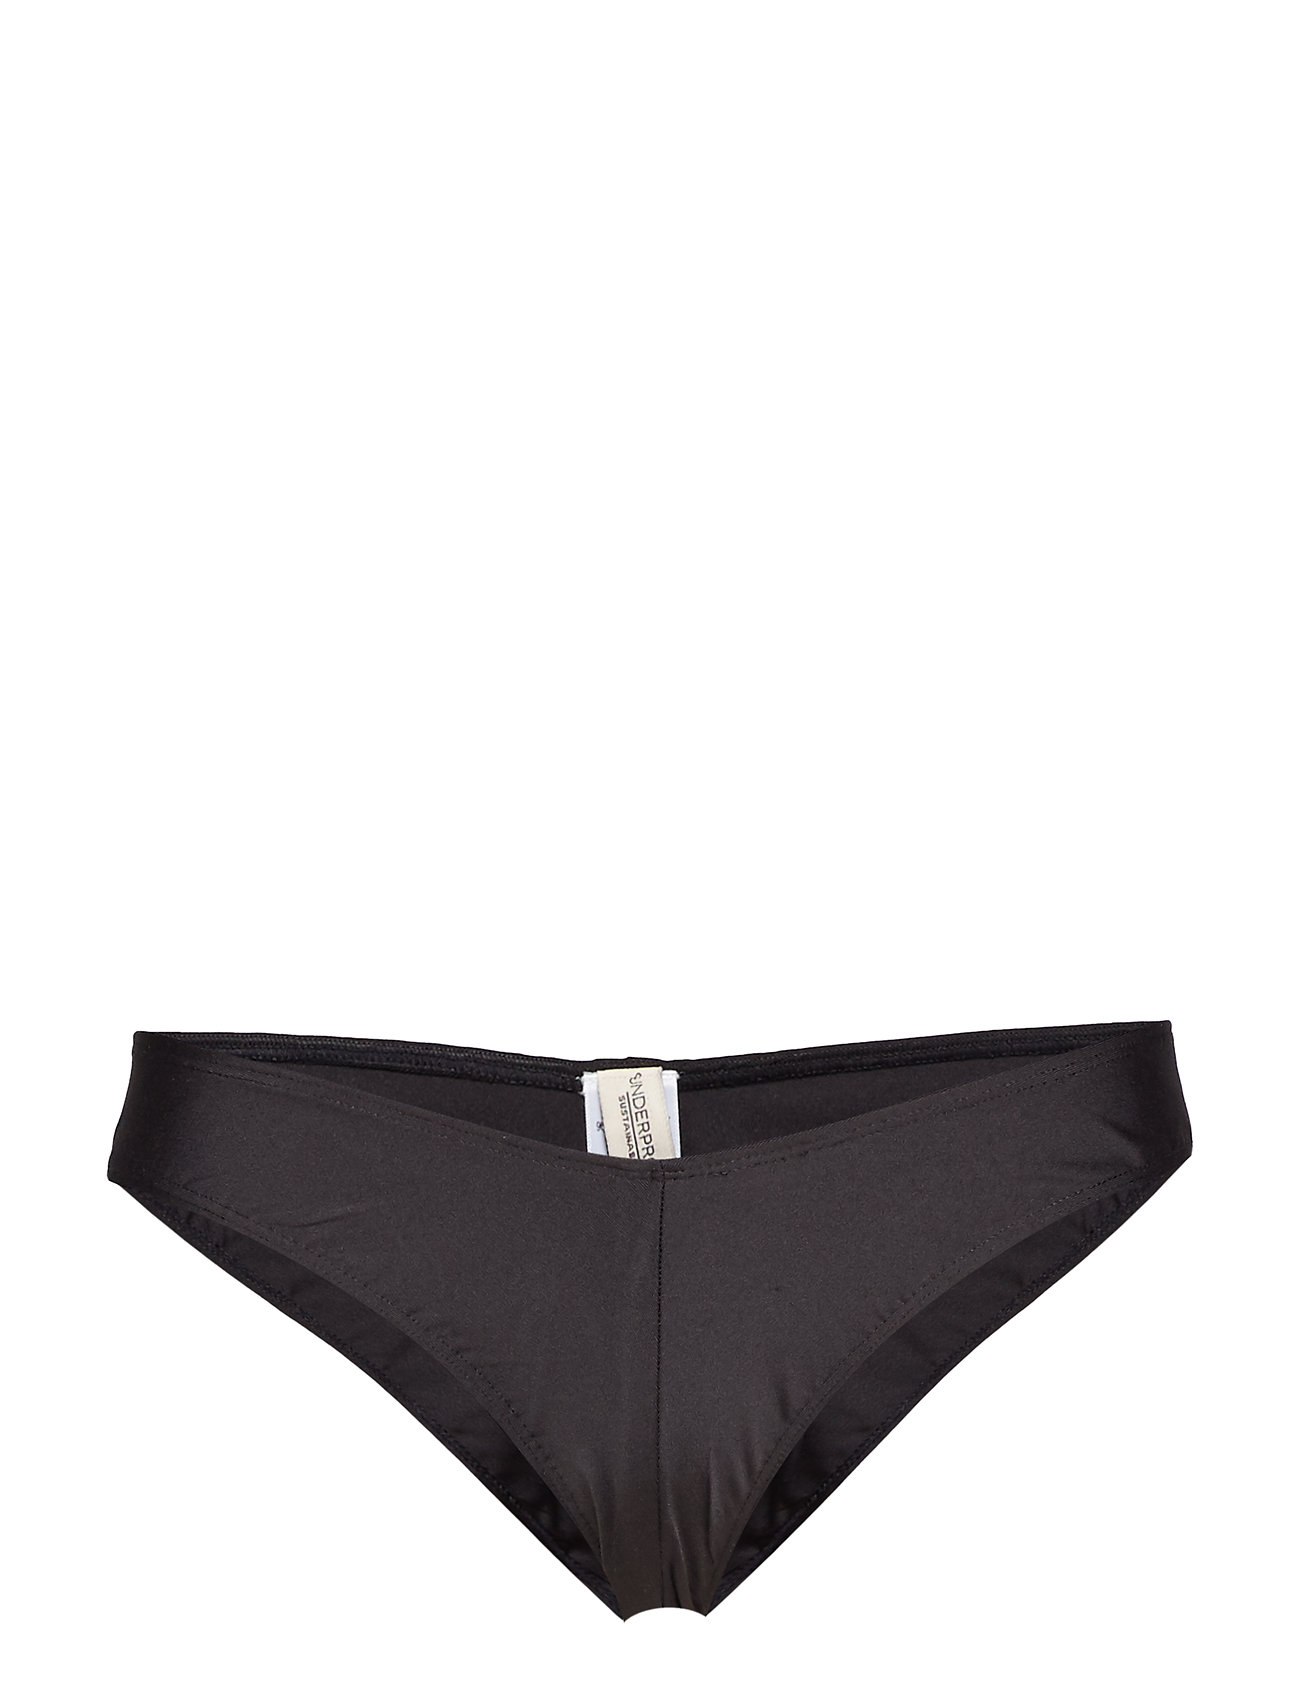 Underprotection Vanessa bikini tanga - BLACK